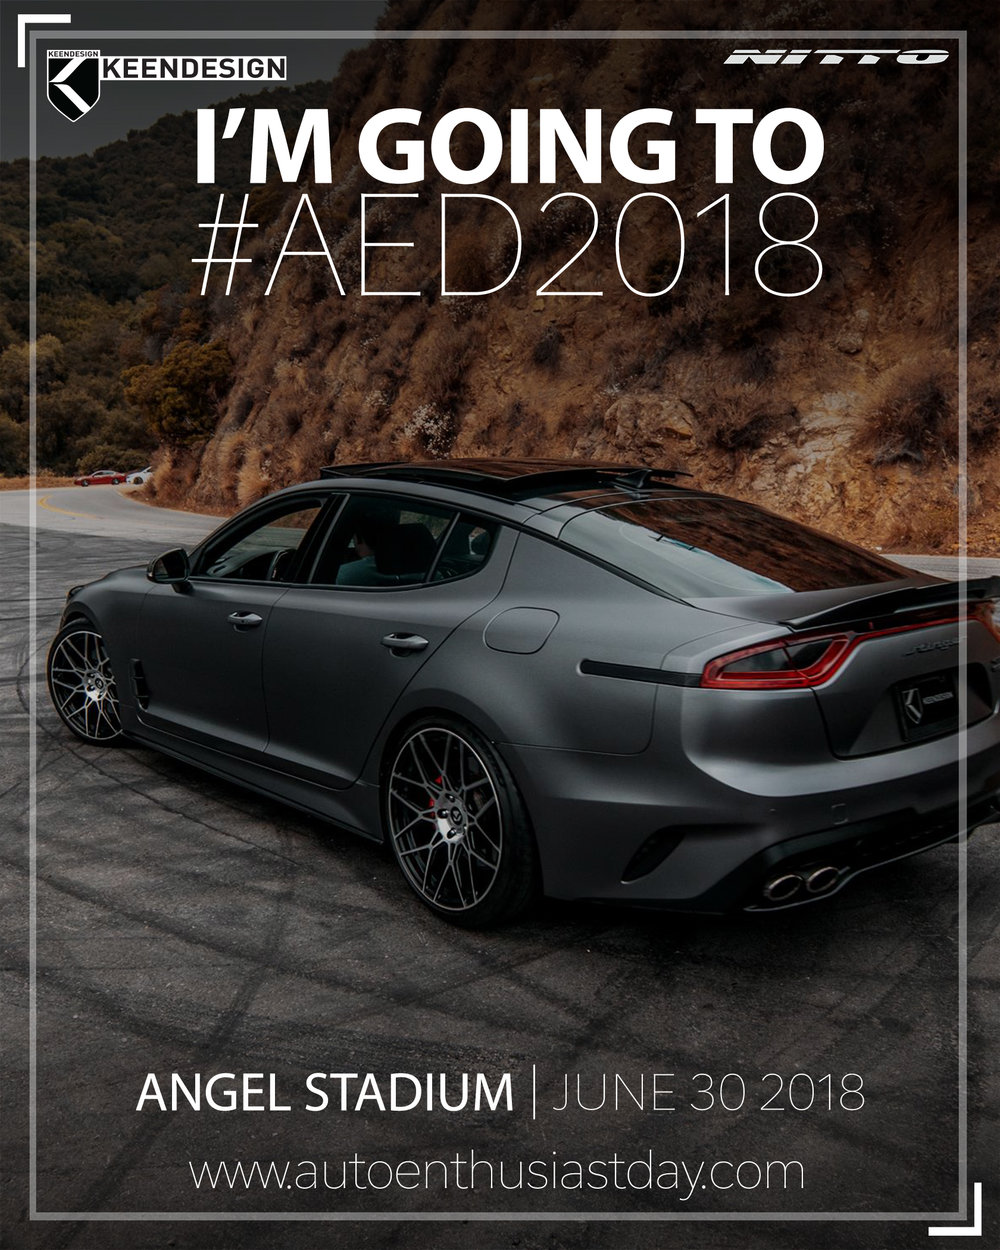 INVITATION TO NITTO DAY KEENDESIGN - Angel stadium car show